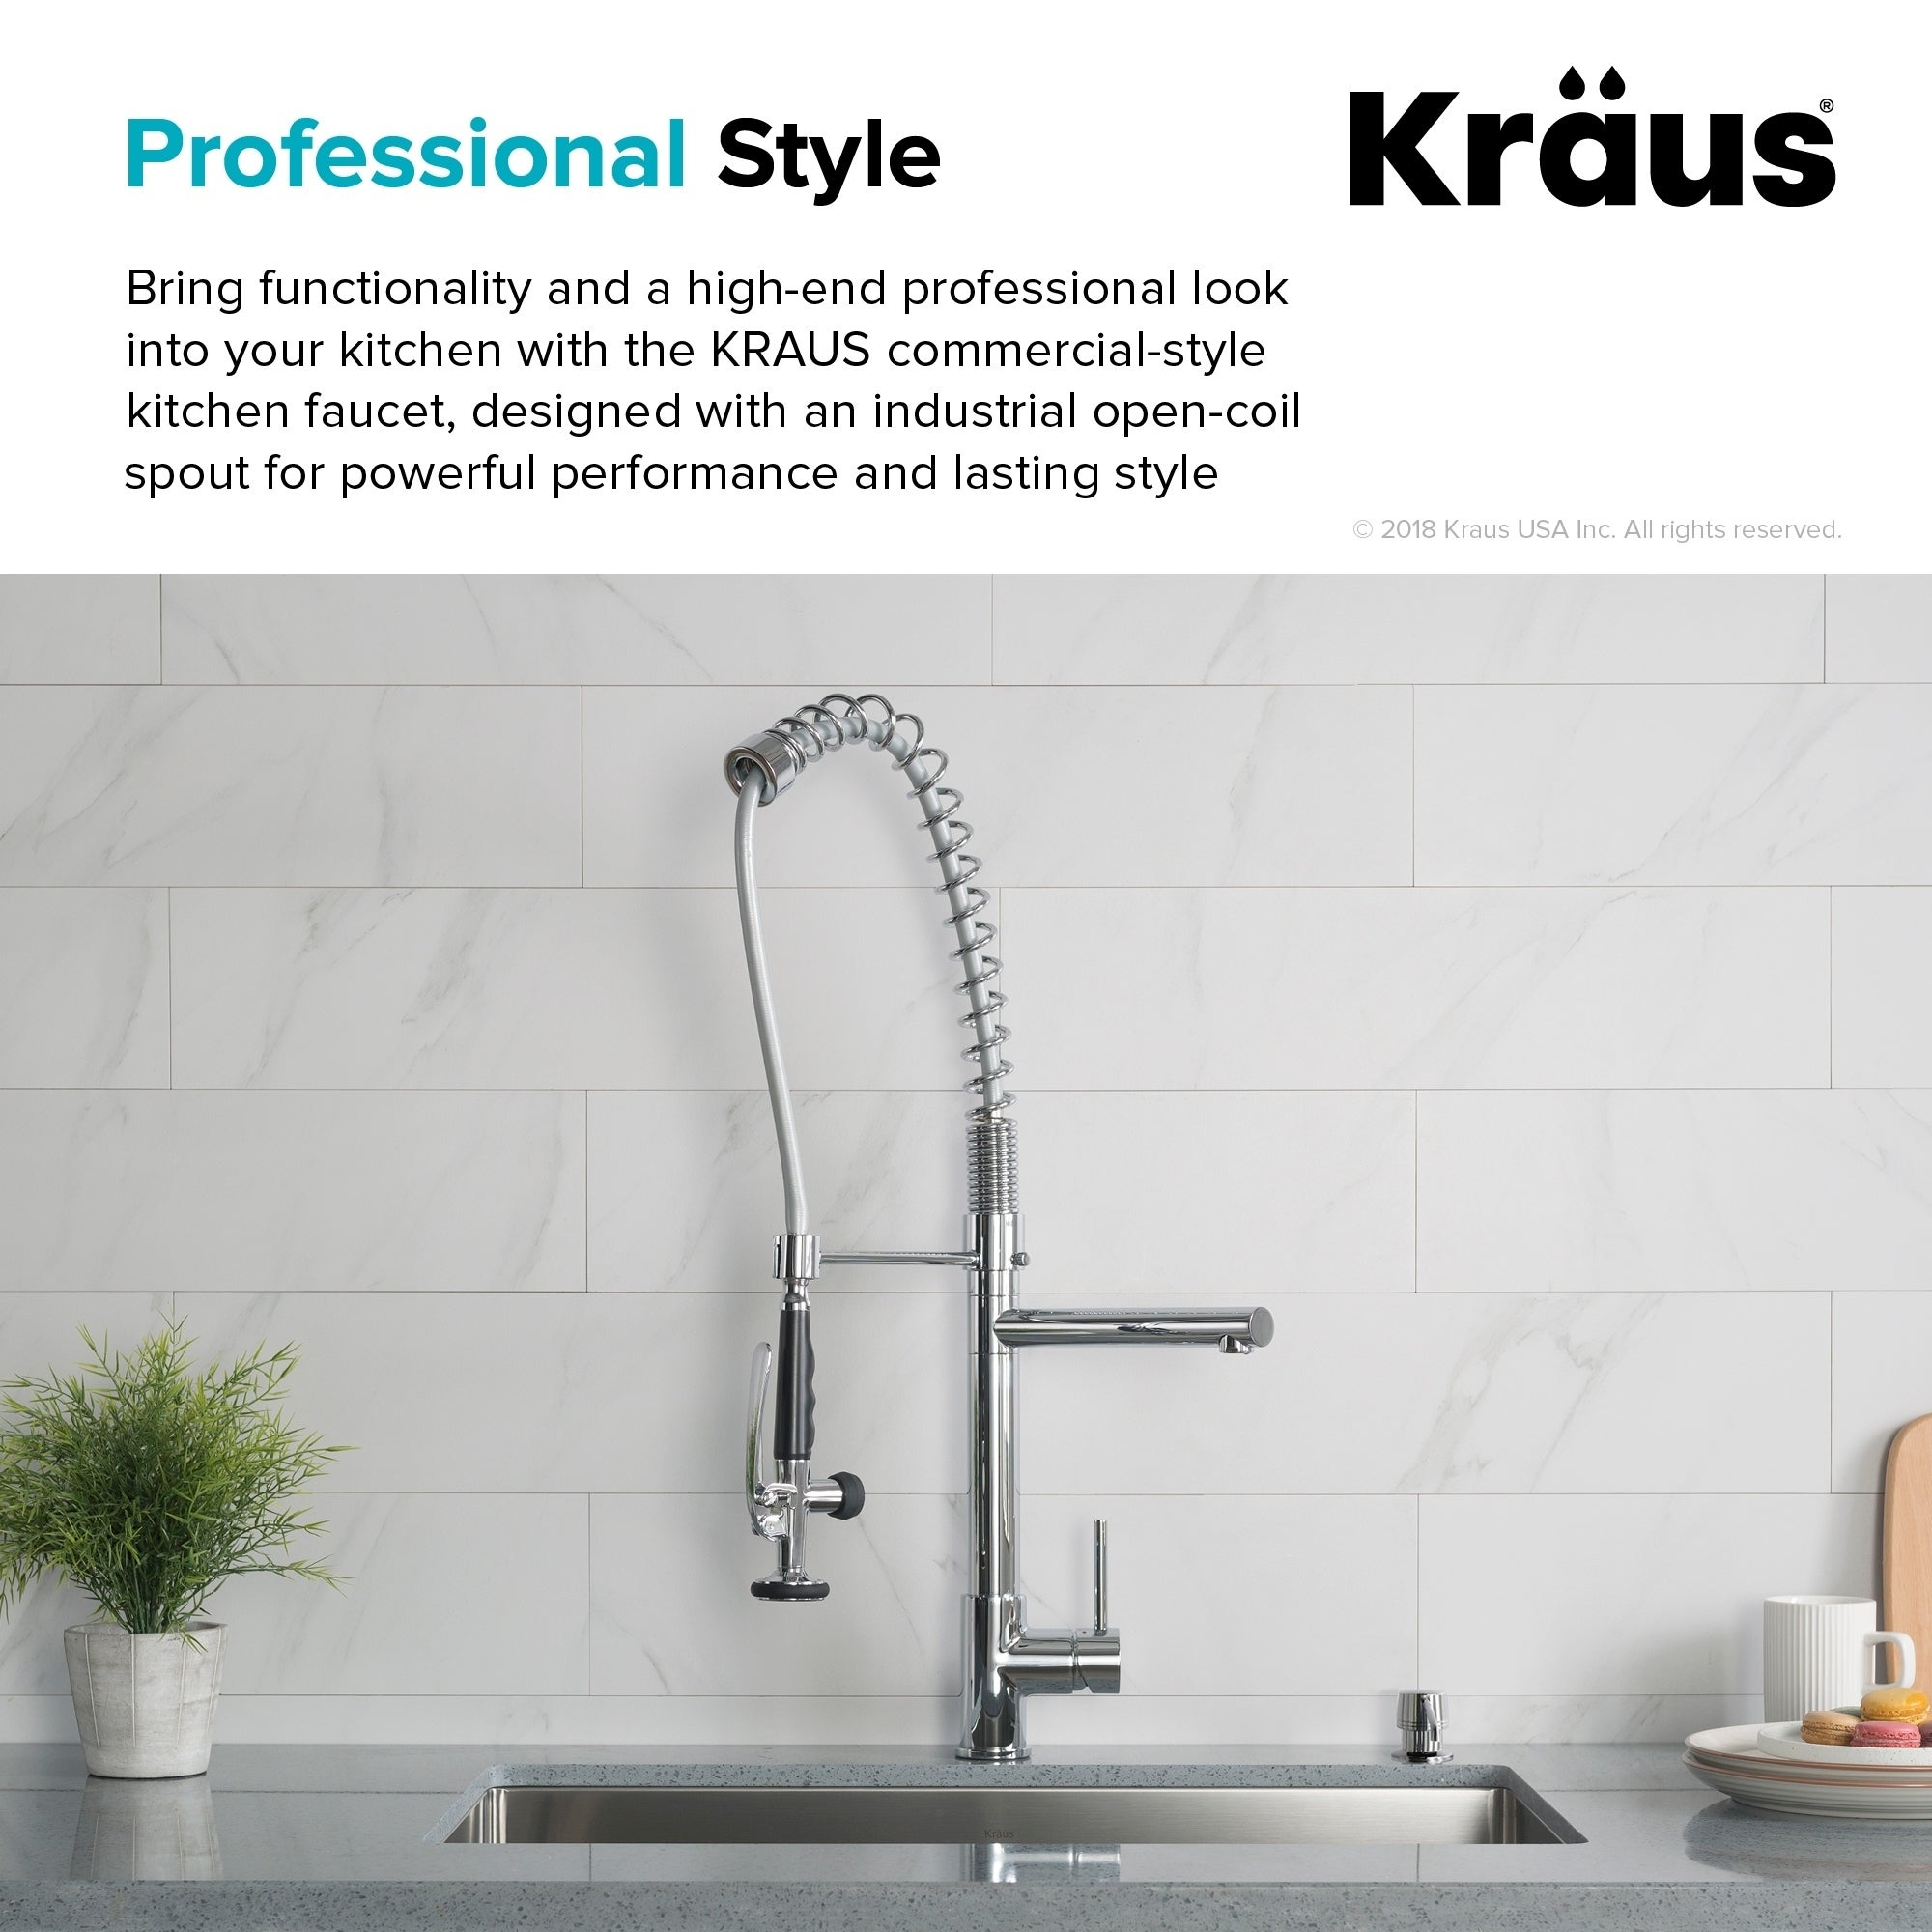 Kraus Kpf 1602 Commercial Style 1 Handle 2 Function Pre Rinse Sprayhead Pull Down Kitchen Faucet Free Shipping Today 3233814